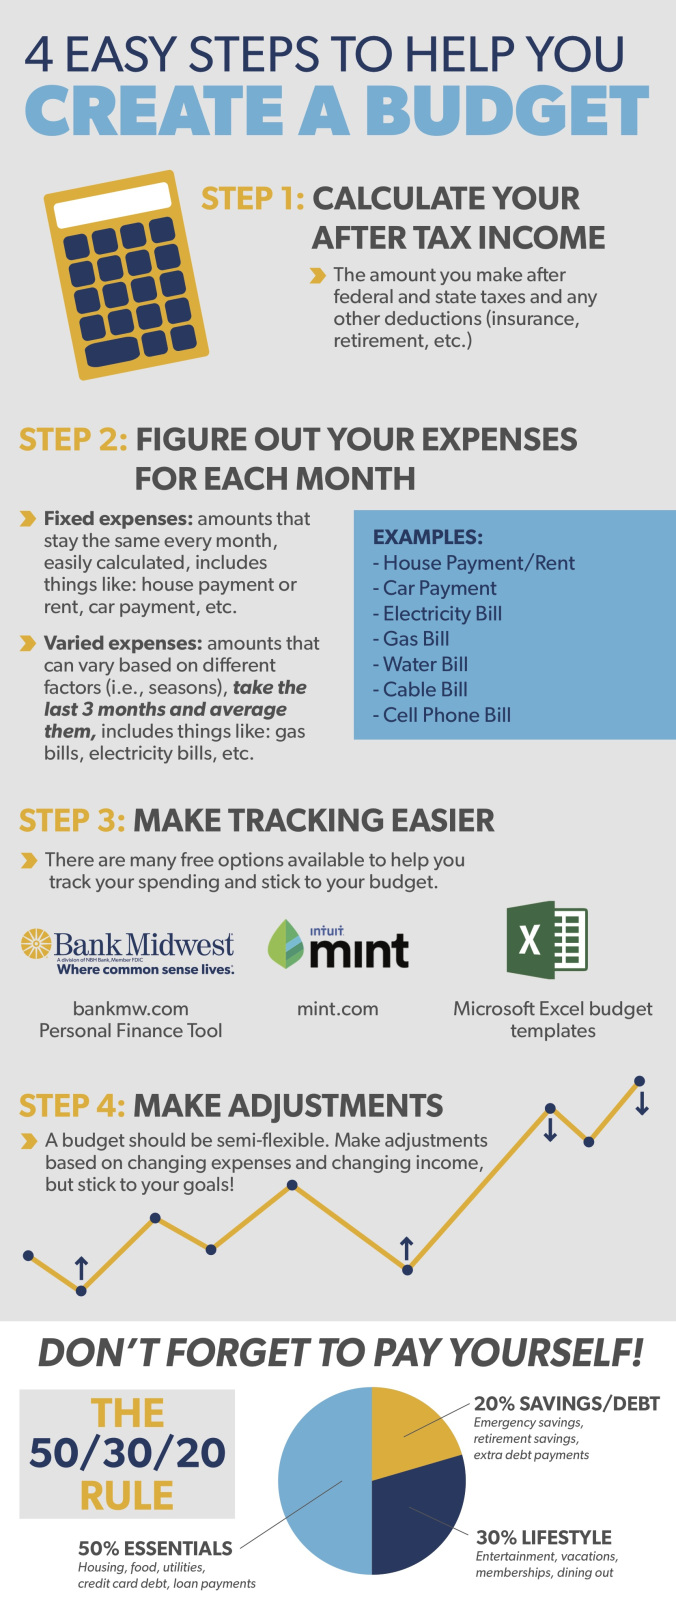 Check Out This Informative Infographic On How To Create A Budget In 4 Easy Steps